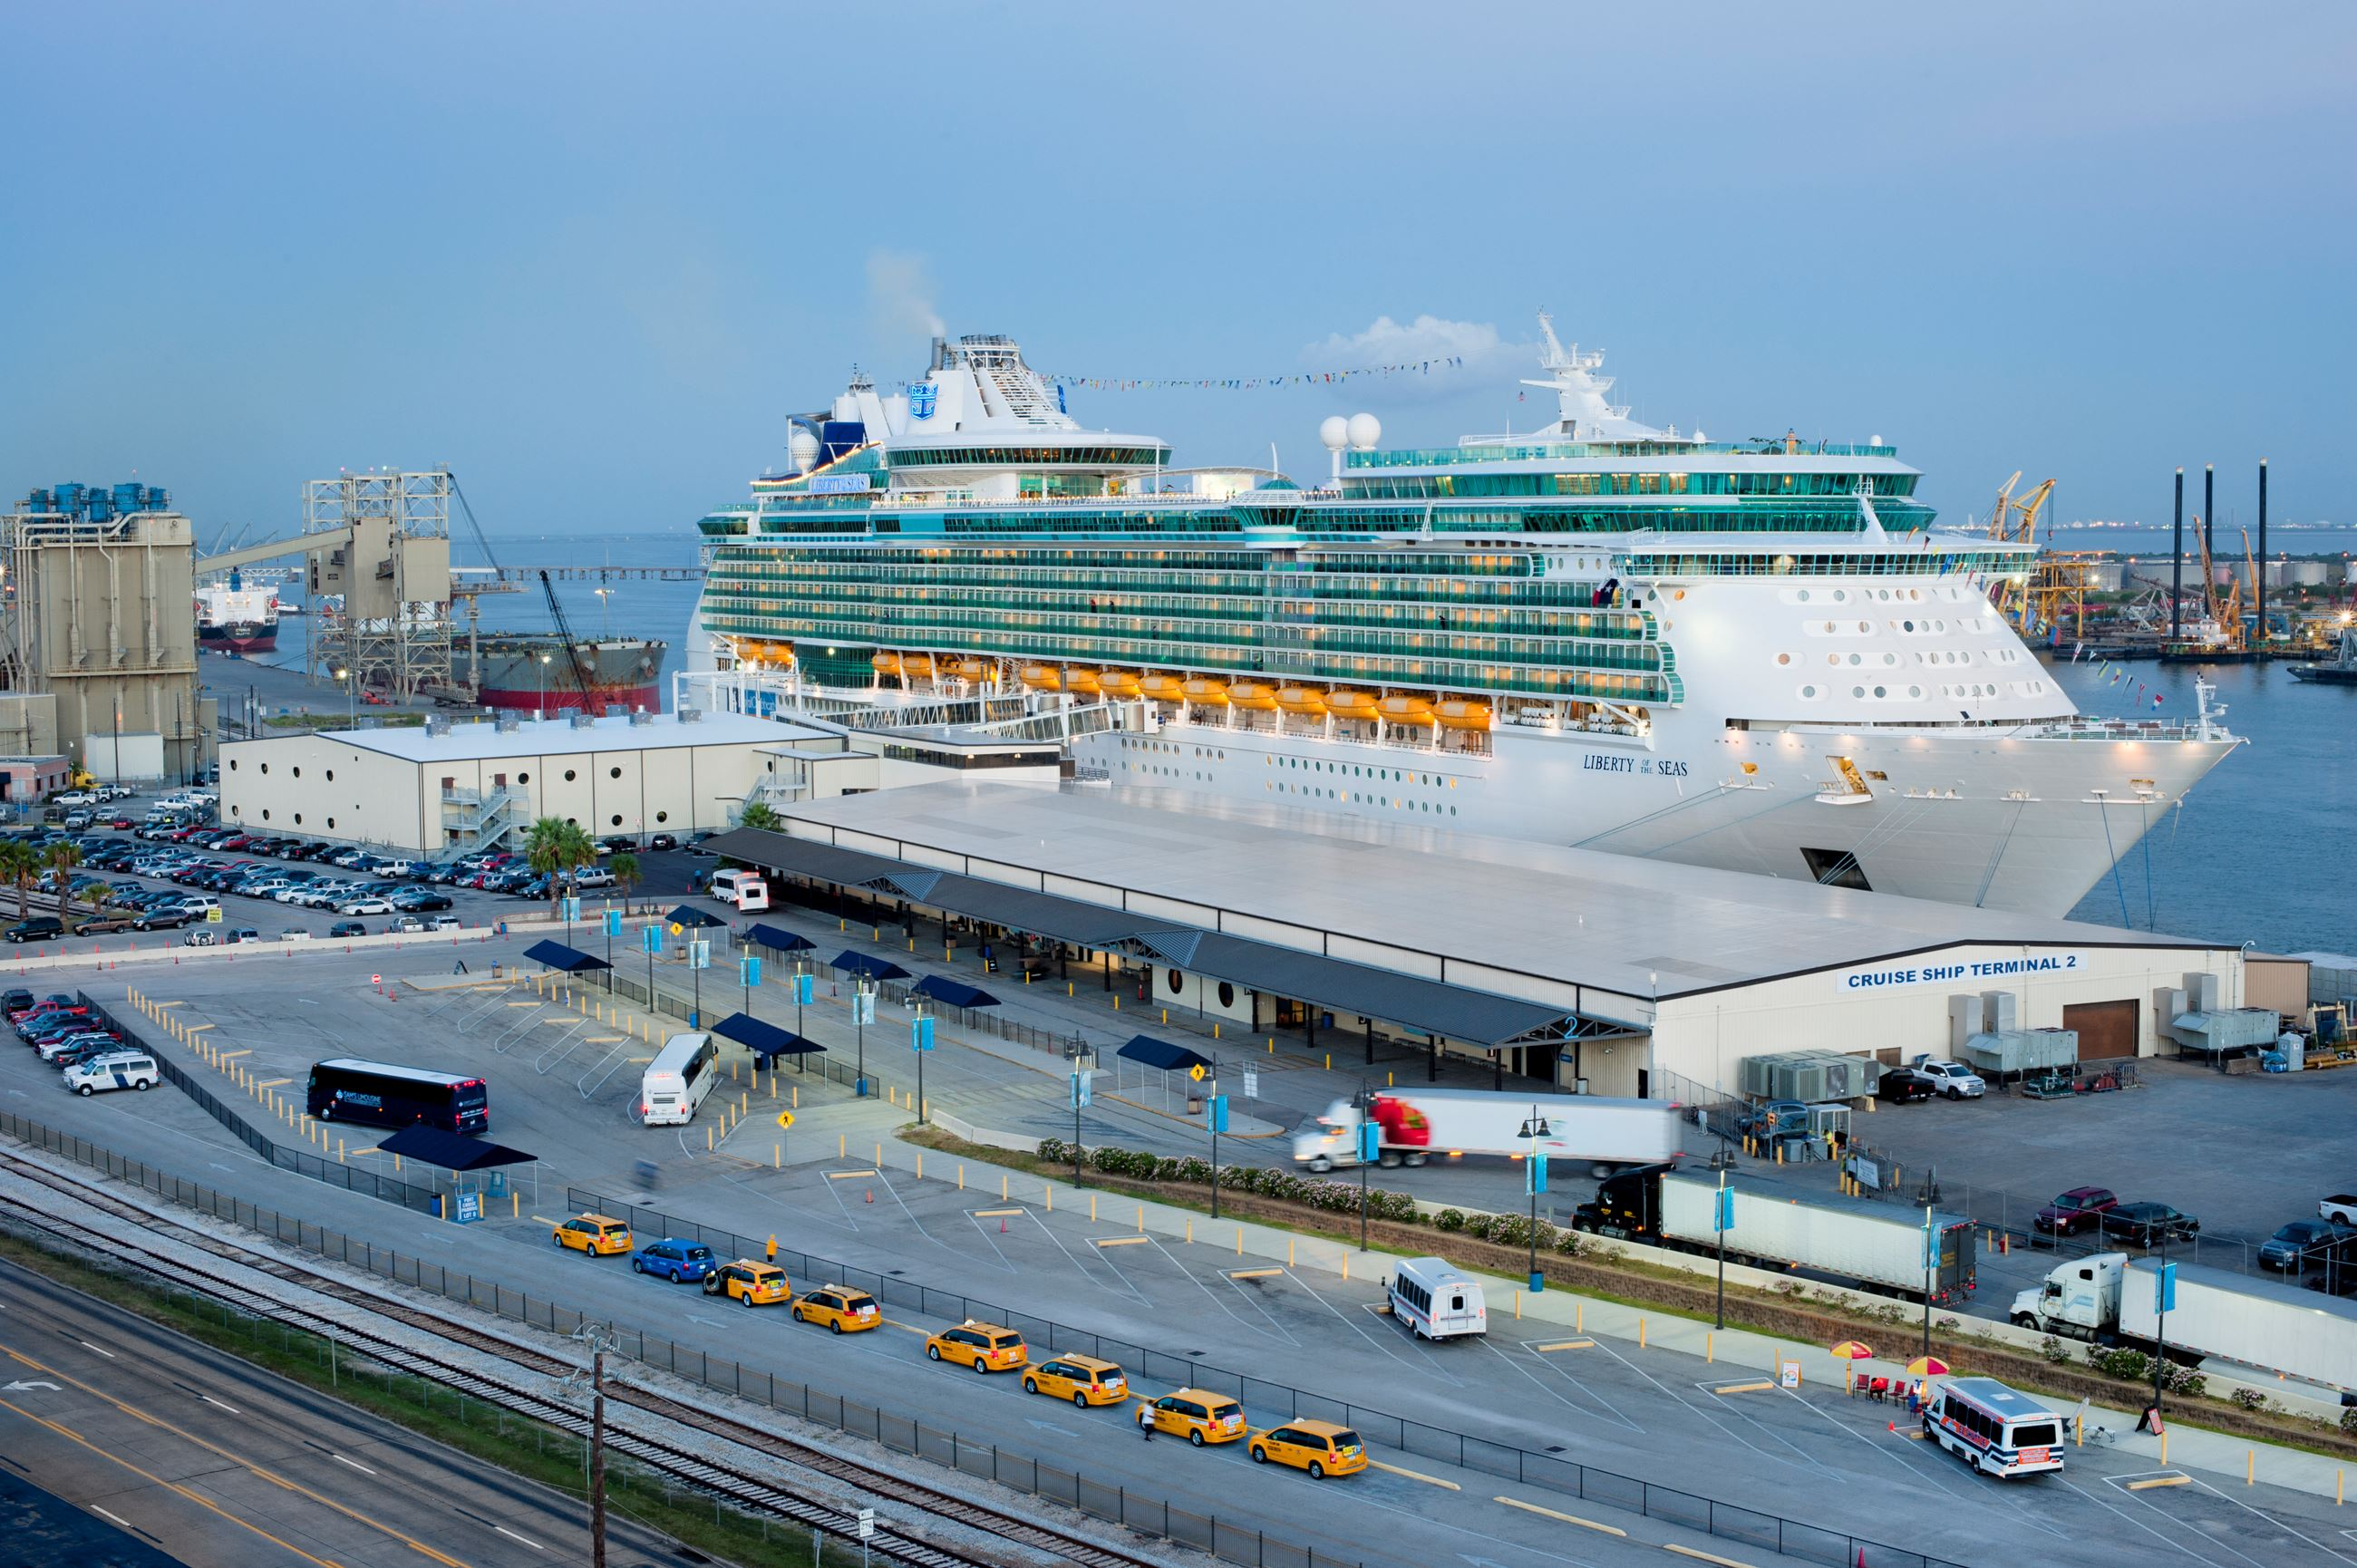 2016 CT2 and Liberty of the Seas